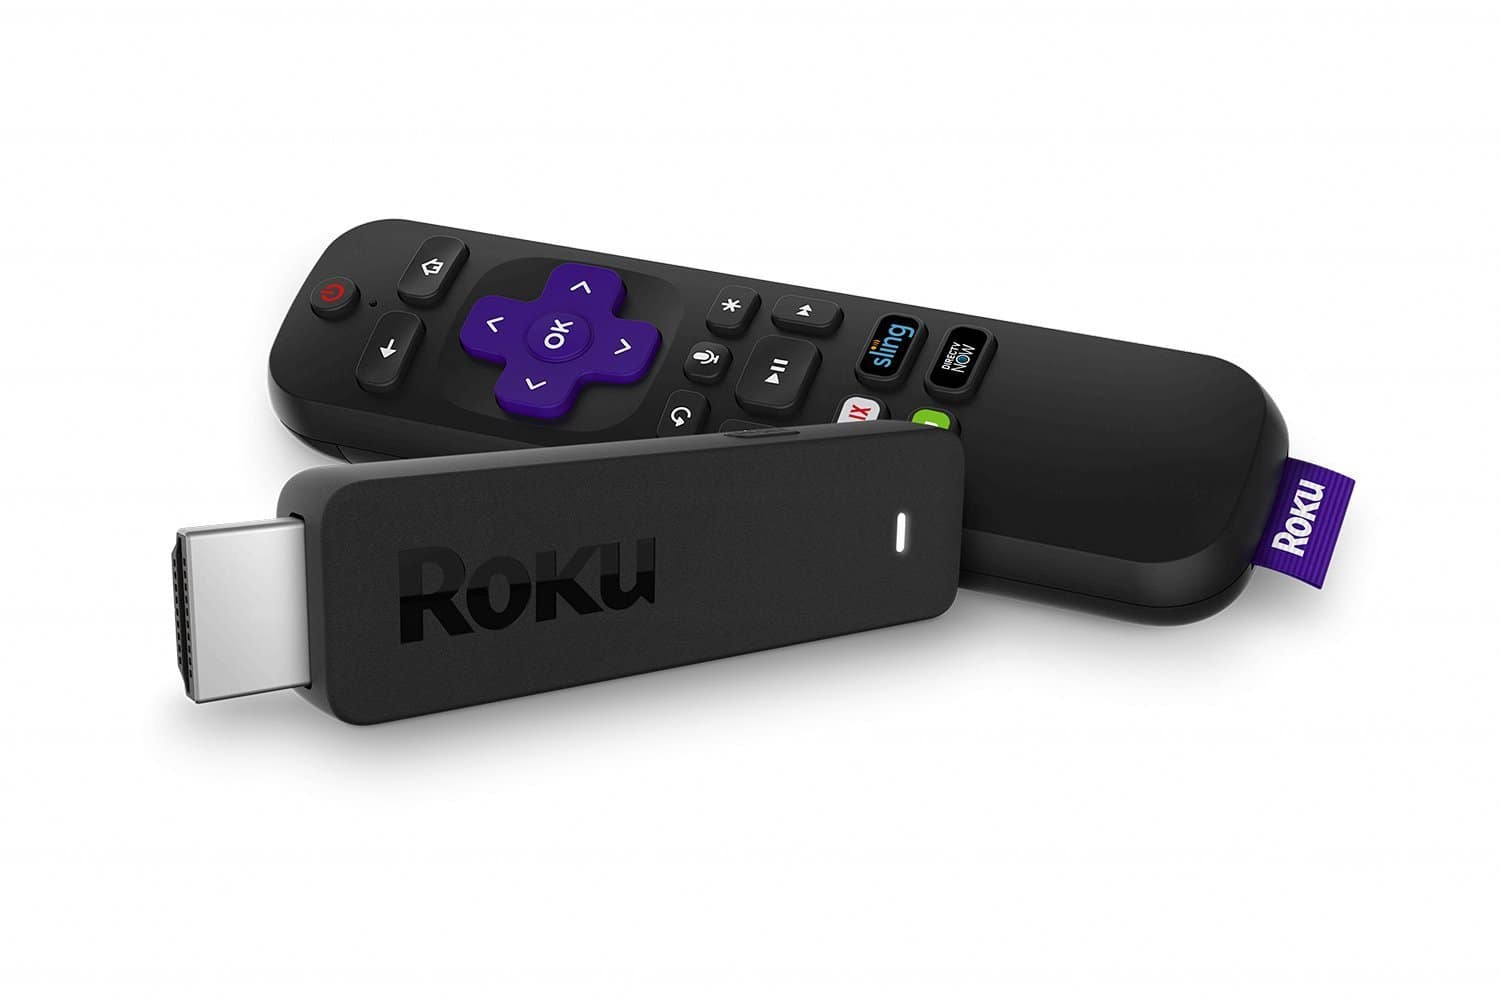 Roku Streaming Stick (2017 Edition) - $36.99 AC + Free Shipping